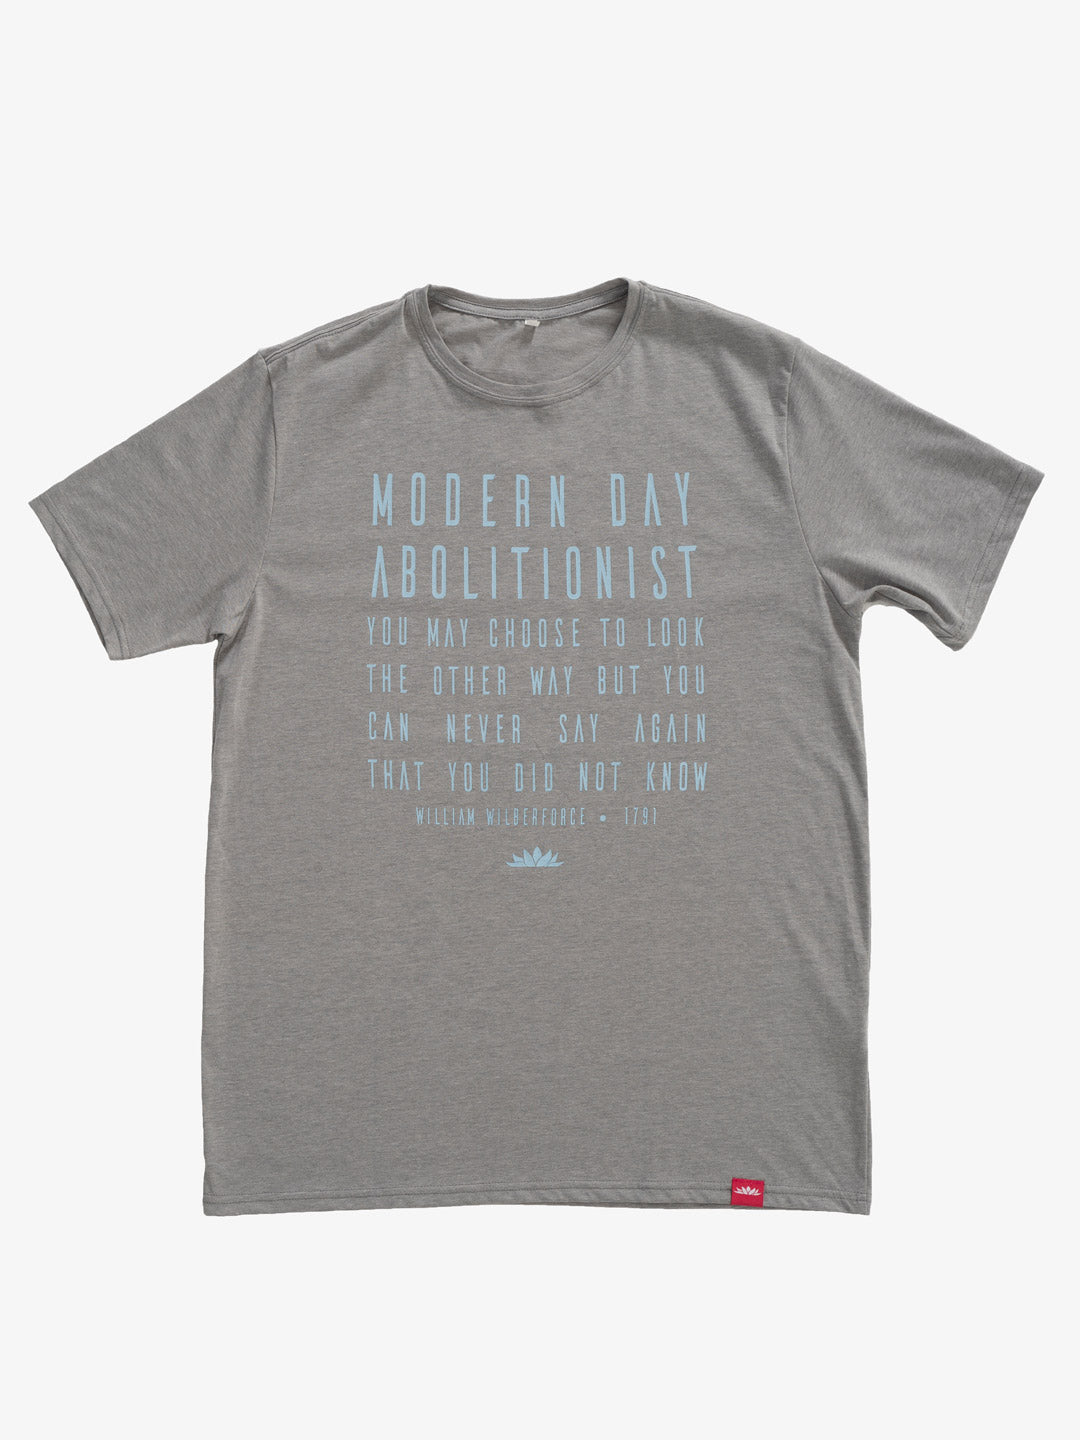 Modern Day Abolitionist Classic Crew Neck Tee [Gray]